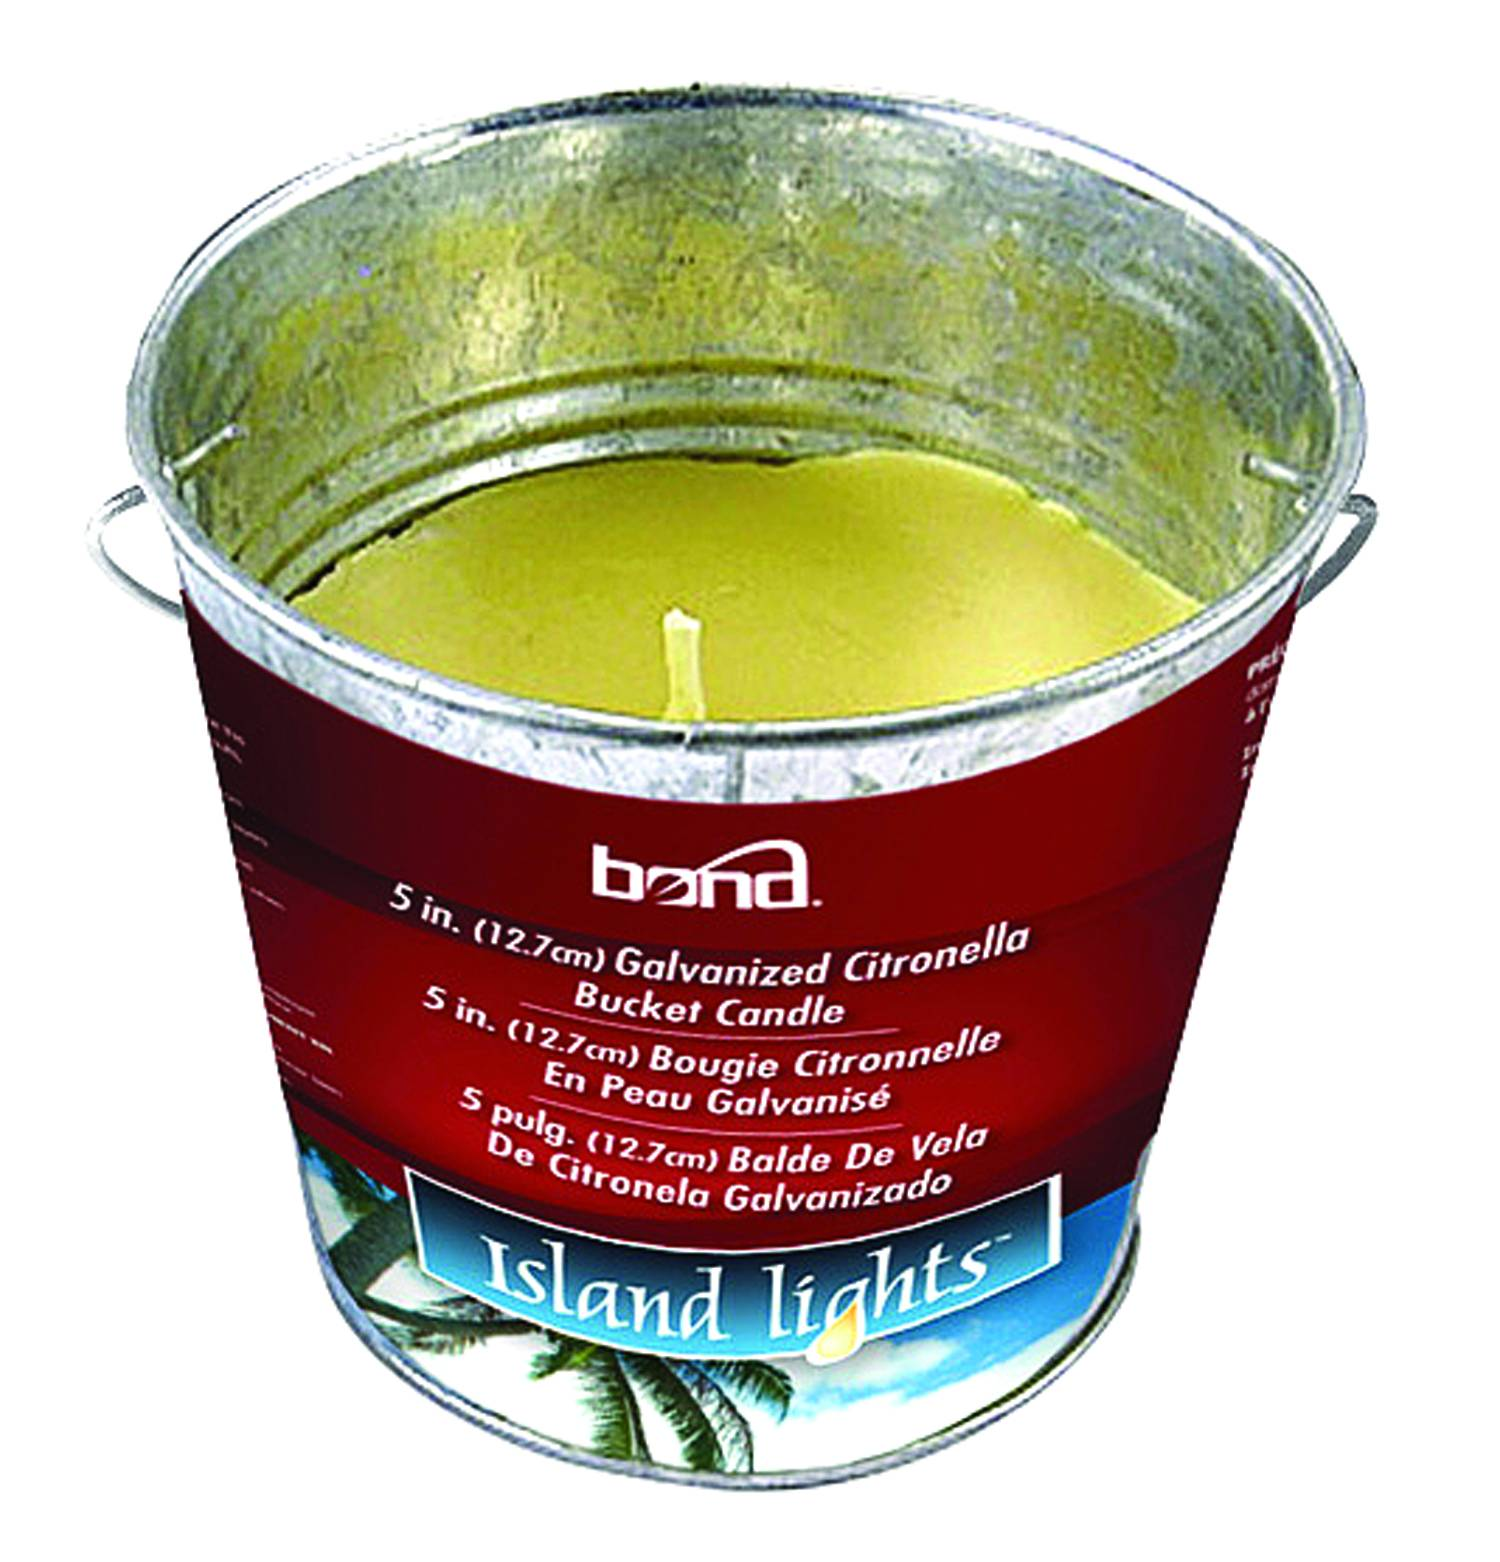 Galvanized Citronella Bucket Candle